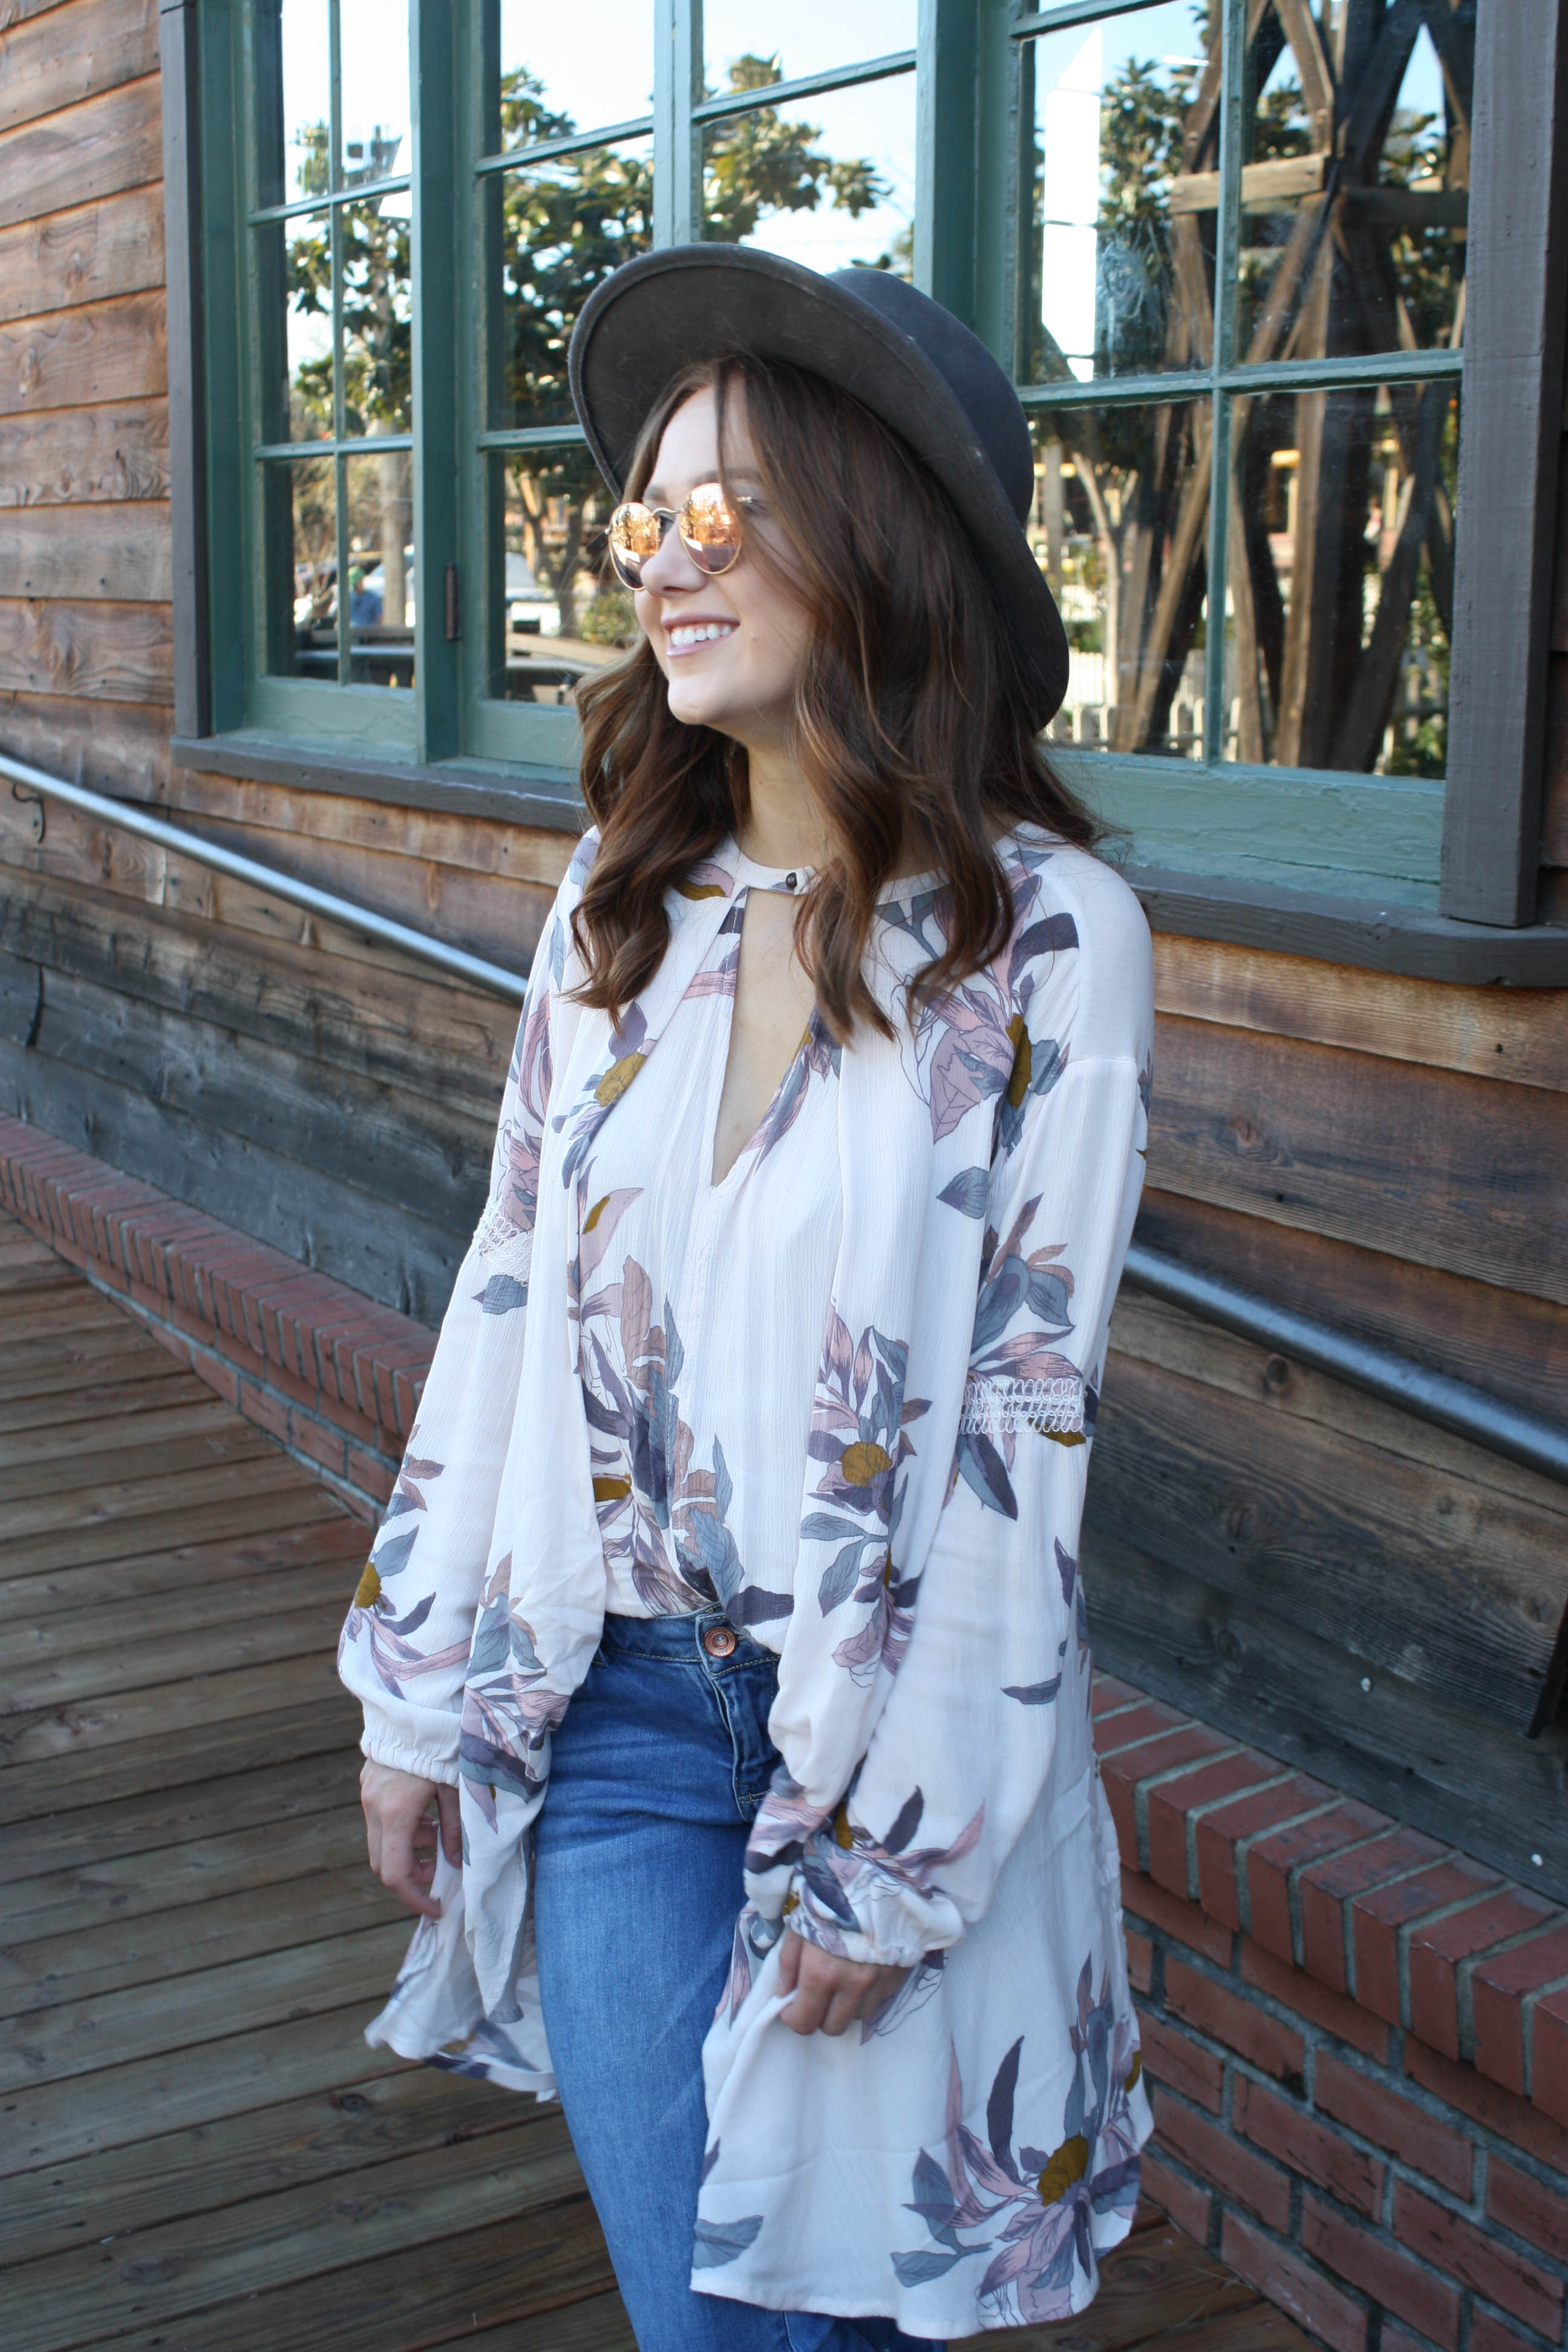 Transitioning to spring fashion with Allison Kelley's favorite floral tops and dresses from free people